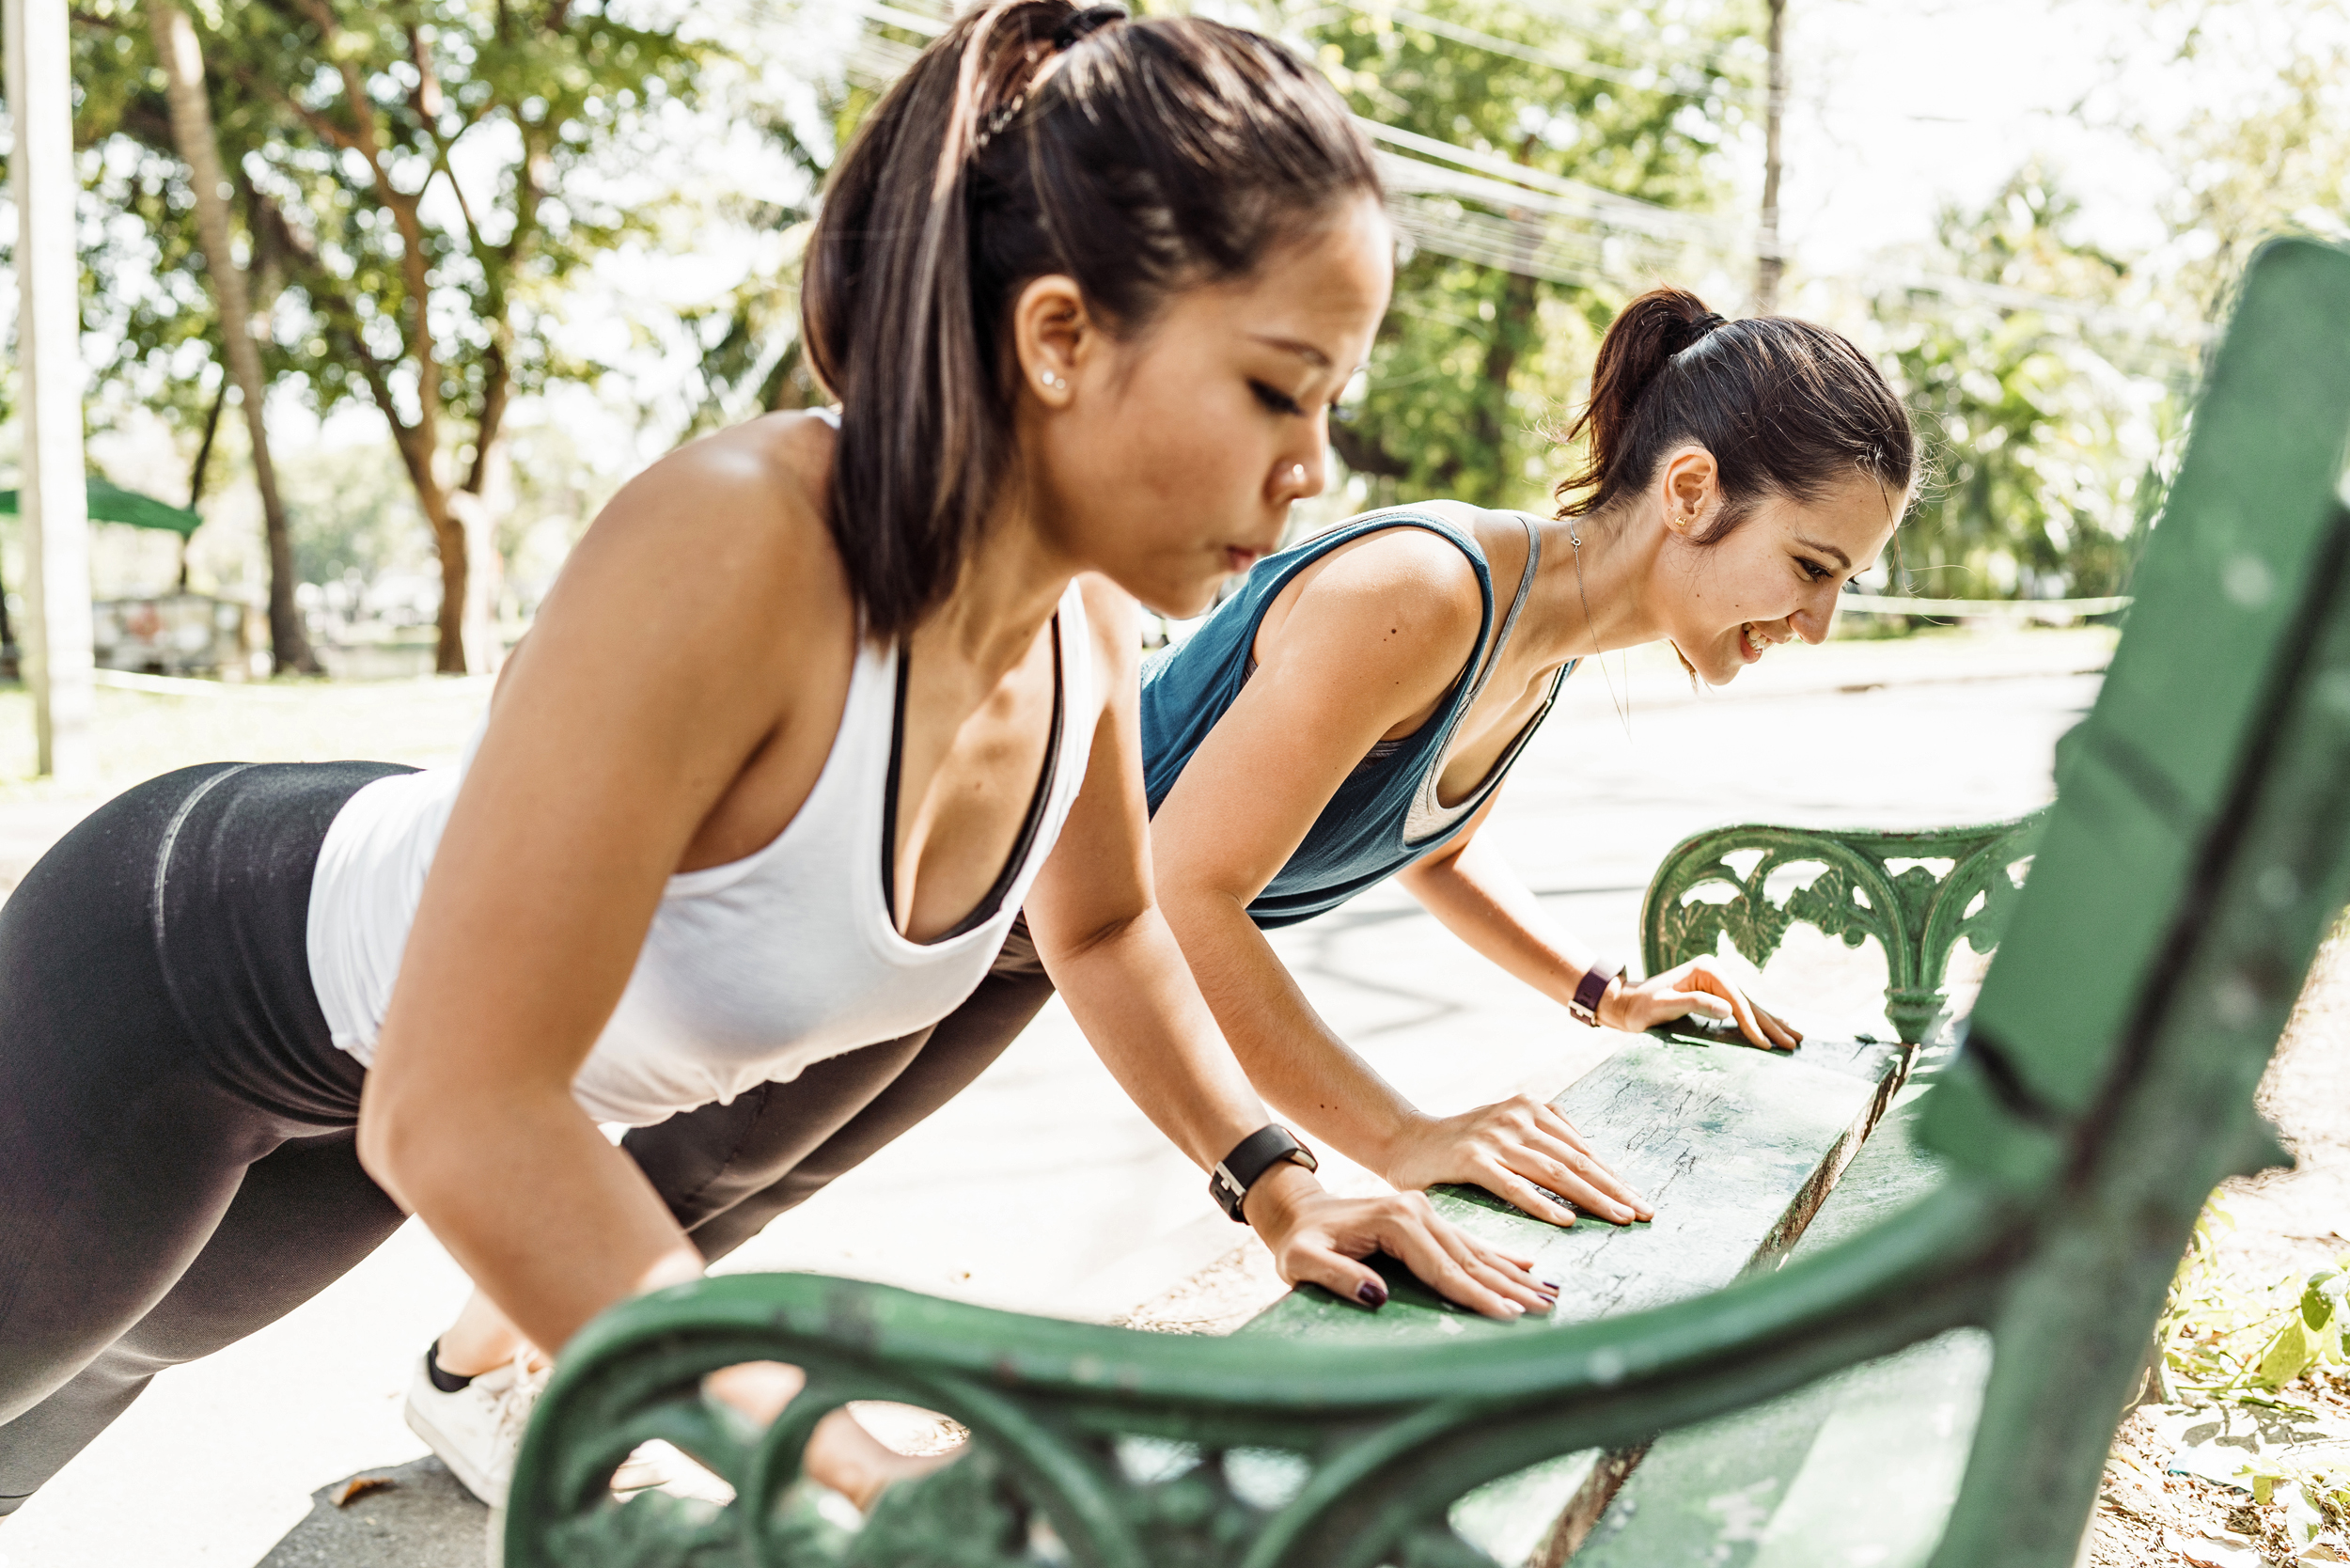 Tips and stretches to reduce wrist and shoulder pain when working out